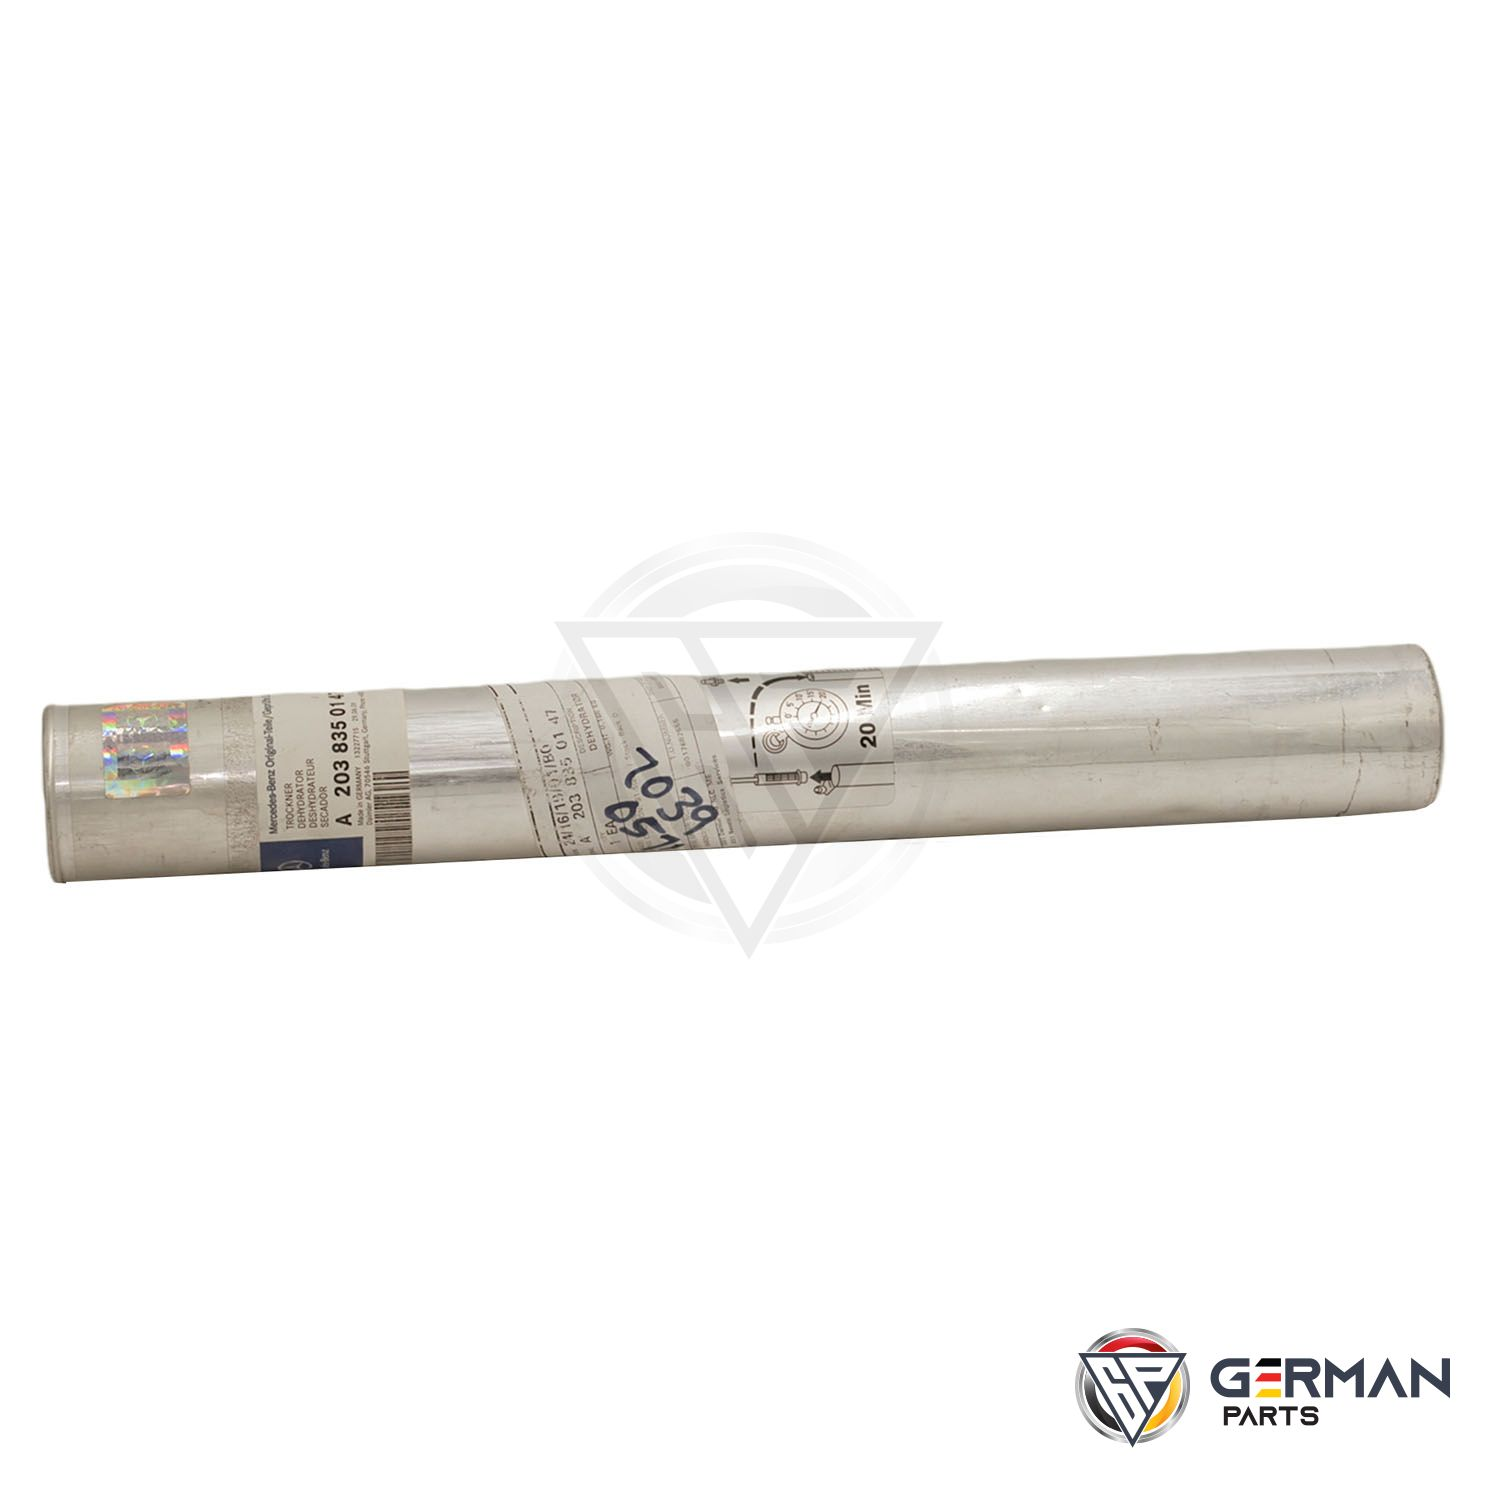 Buy Genuine Mercedes Benz Ac Drier 2038350147 - German Parts